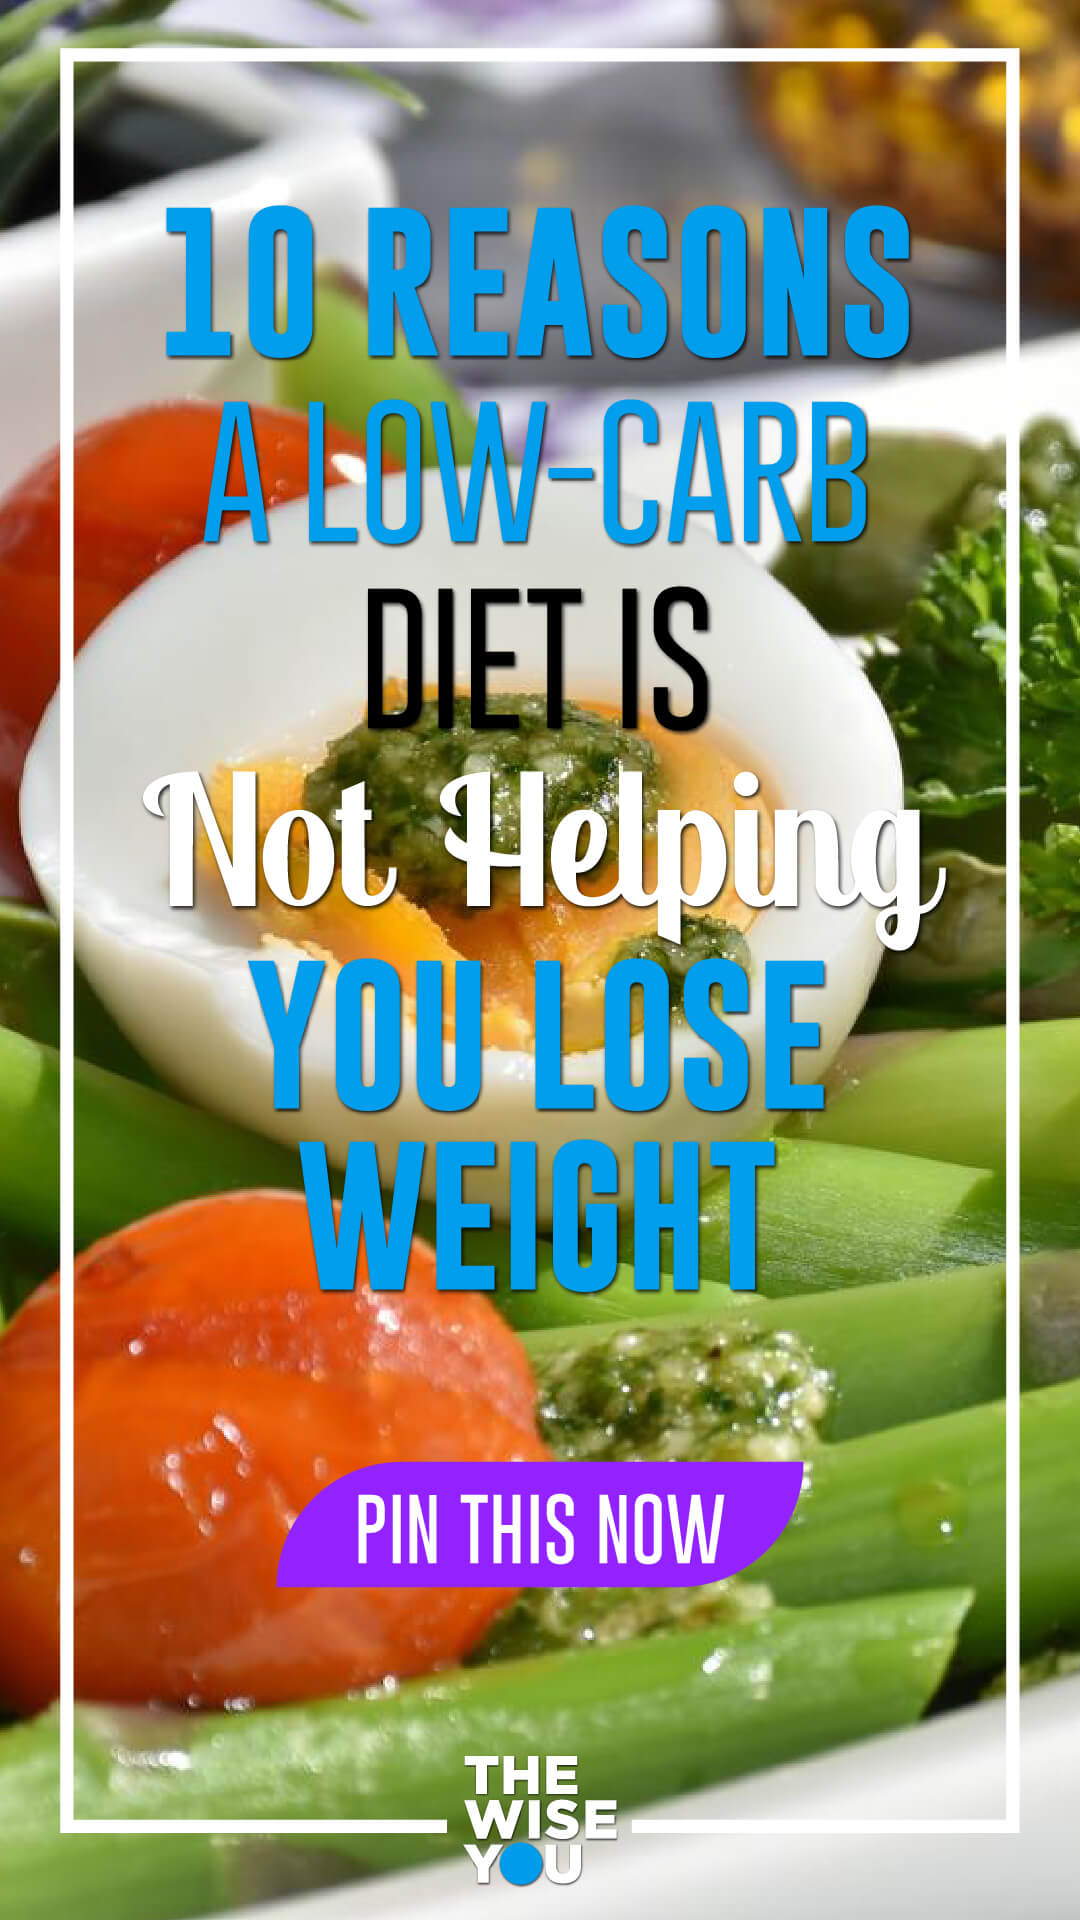 10 Reasons a Low-Carb Diet Is Not Helping You Lose Weight